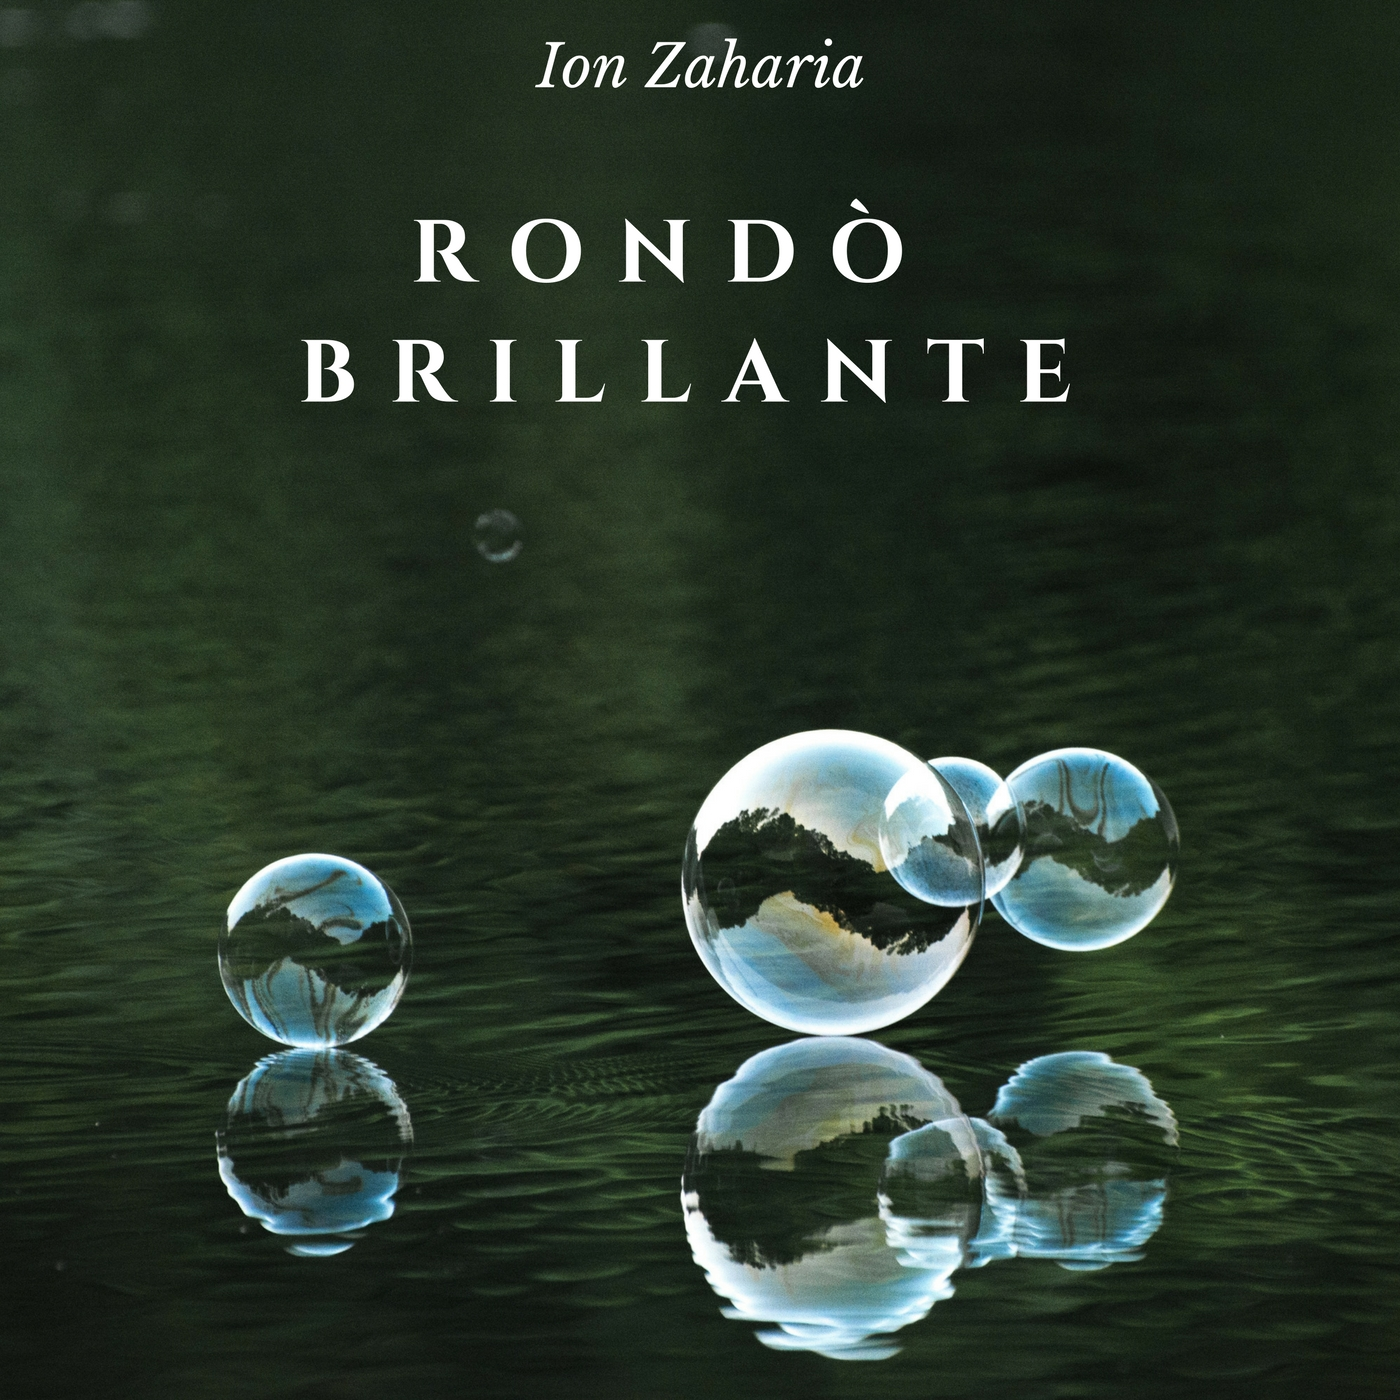 Rondò Brillante